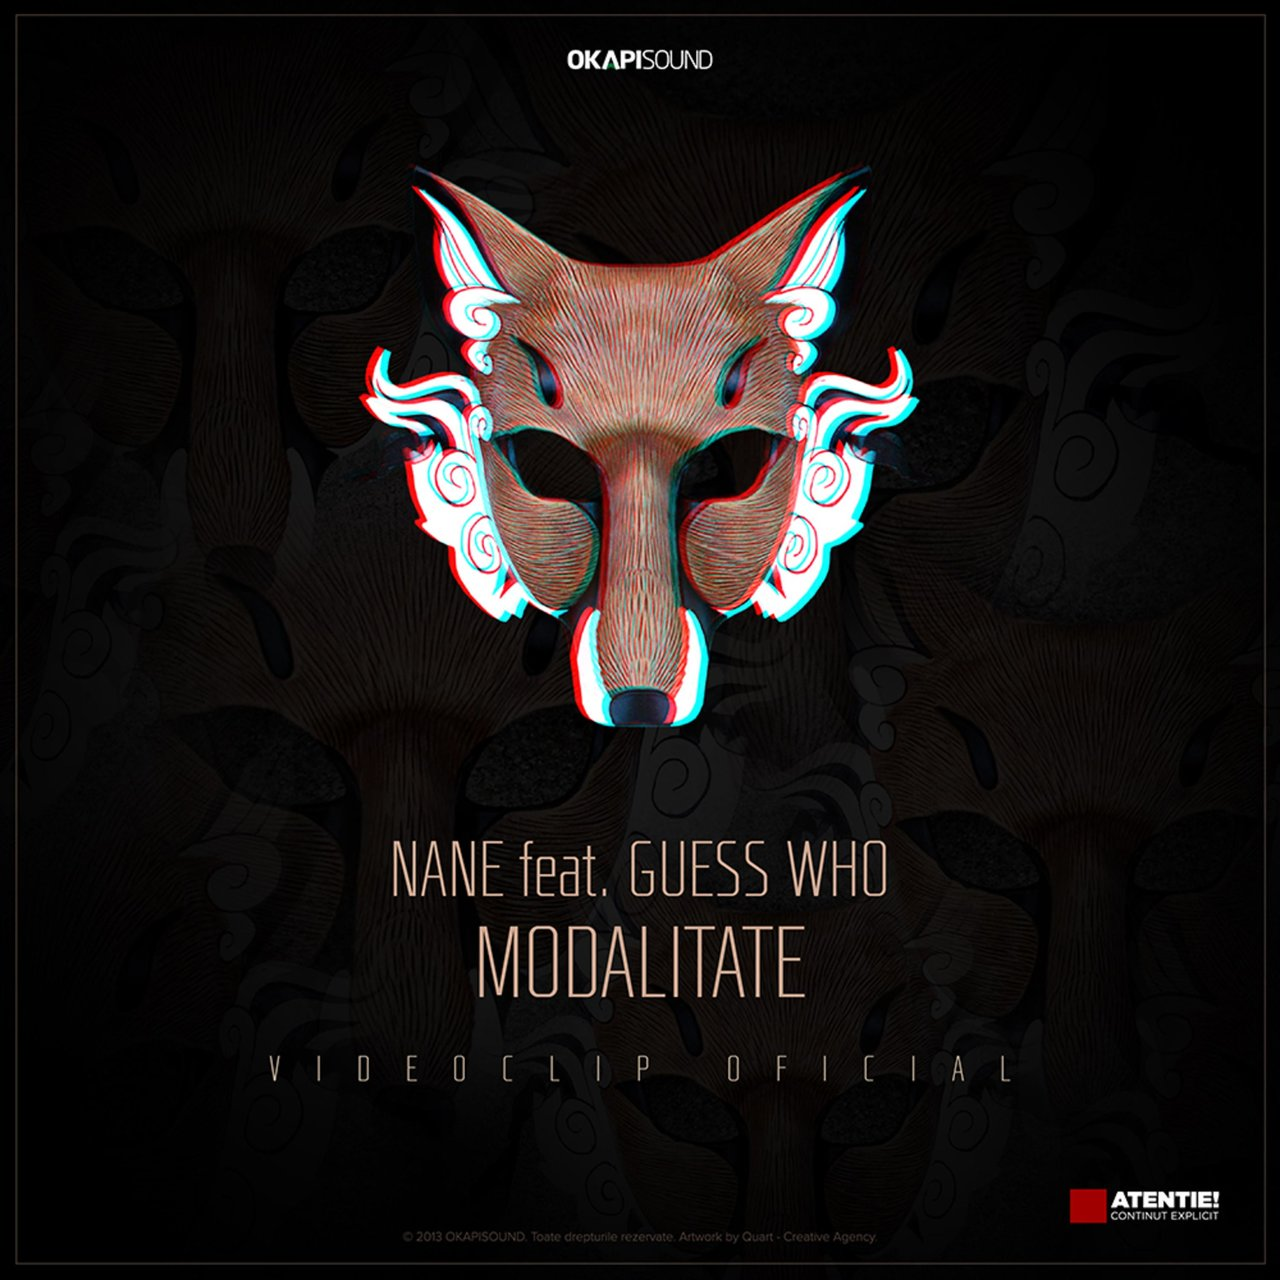 Modalitate (feat. Guess Who)